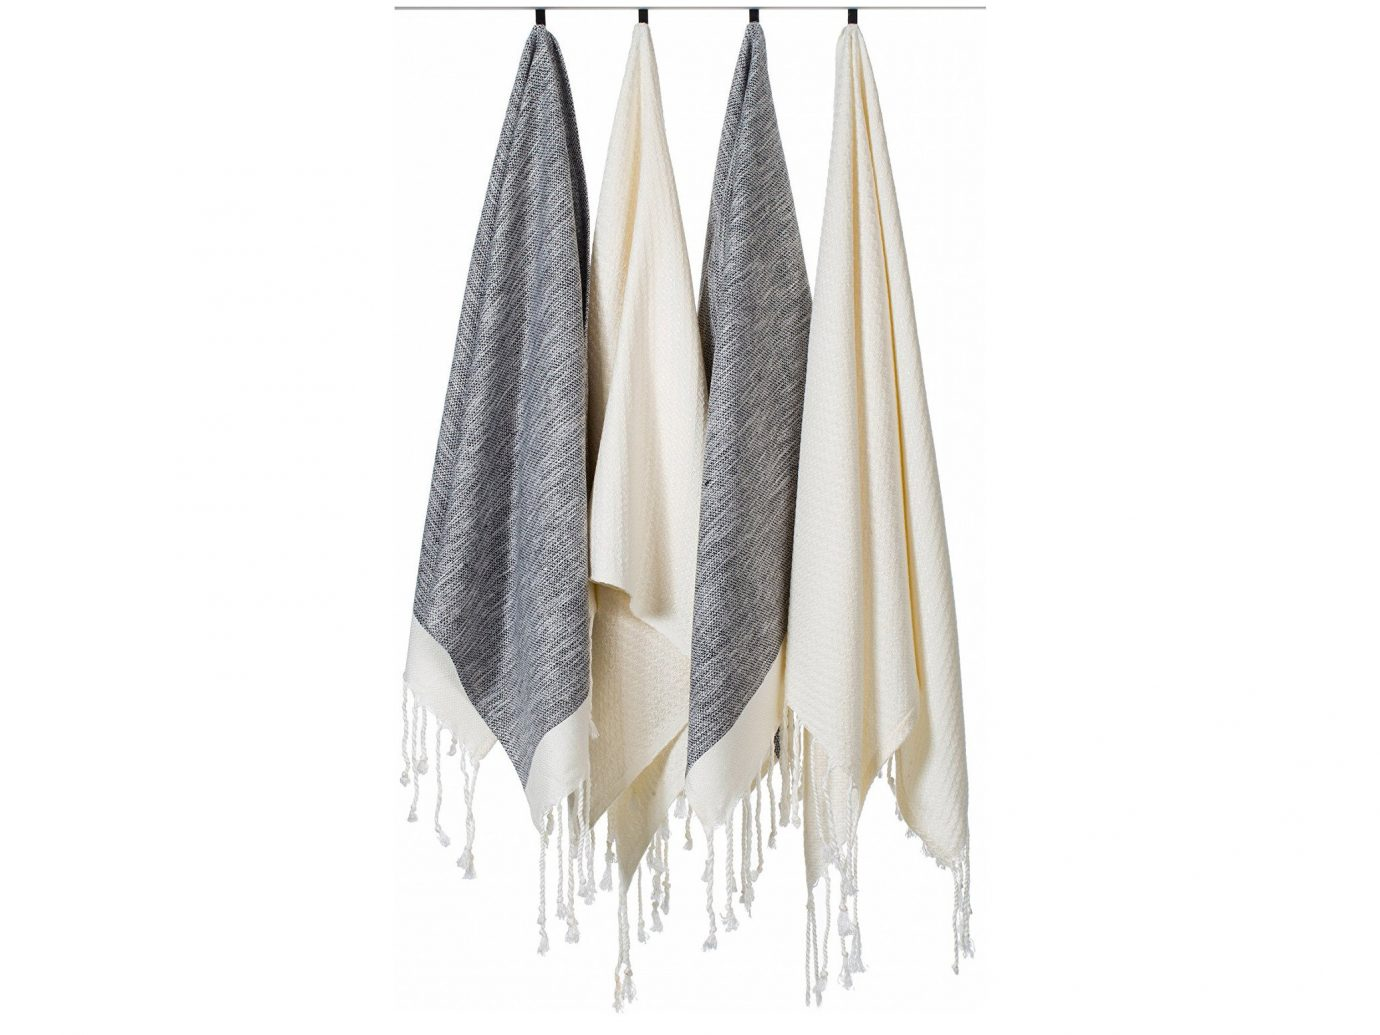 Style + Design Travel Shop clothes hanger textile linens